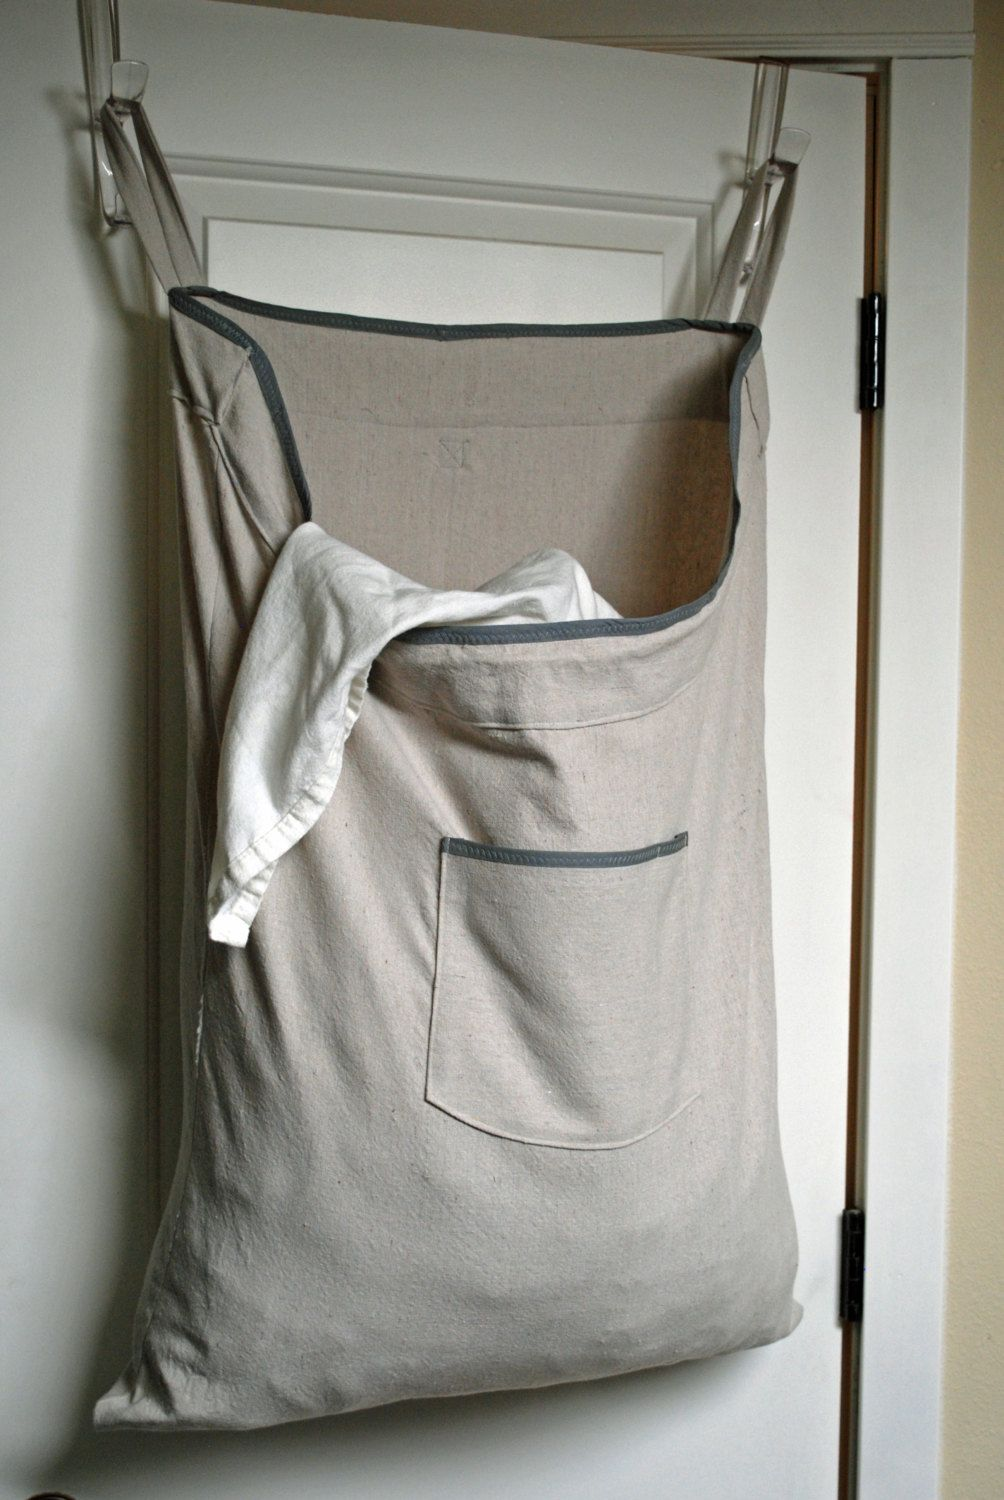 White Hanging Laundry Bag Hanging Laundry Bag Will Be Very